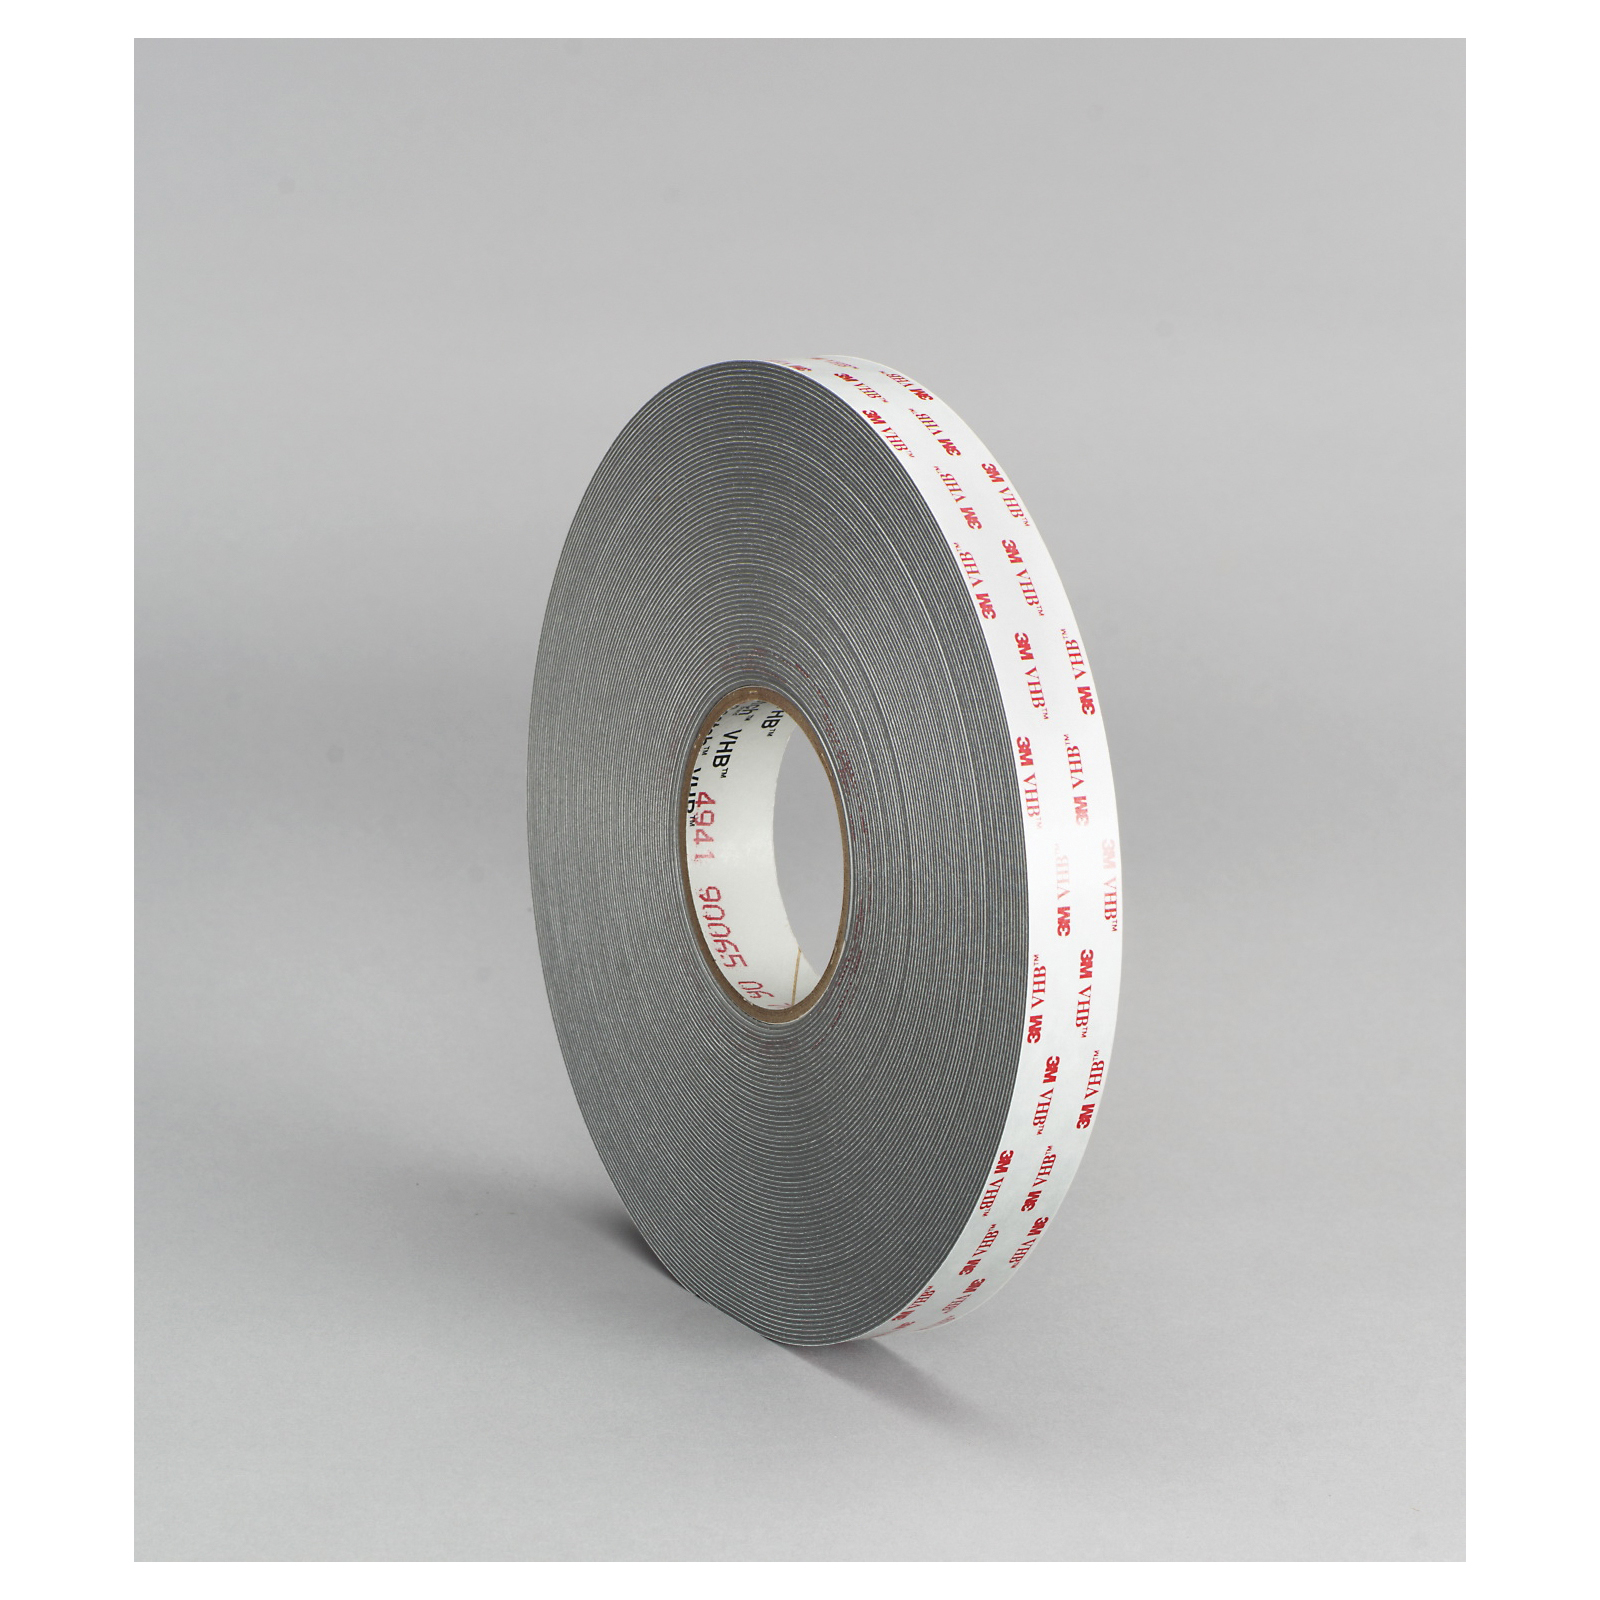 3M™ VHB™ 021200-18092 Pressure Sensitive Double Sided Bonding Tape, 36 yd L x 1 in W, 0.045 in THK, General Purpose Acrylic Adhesive, Acrylic Foam Backing, White